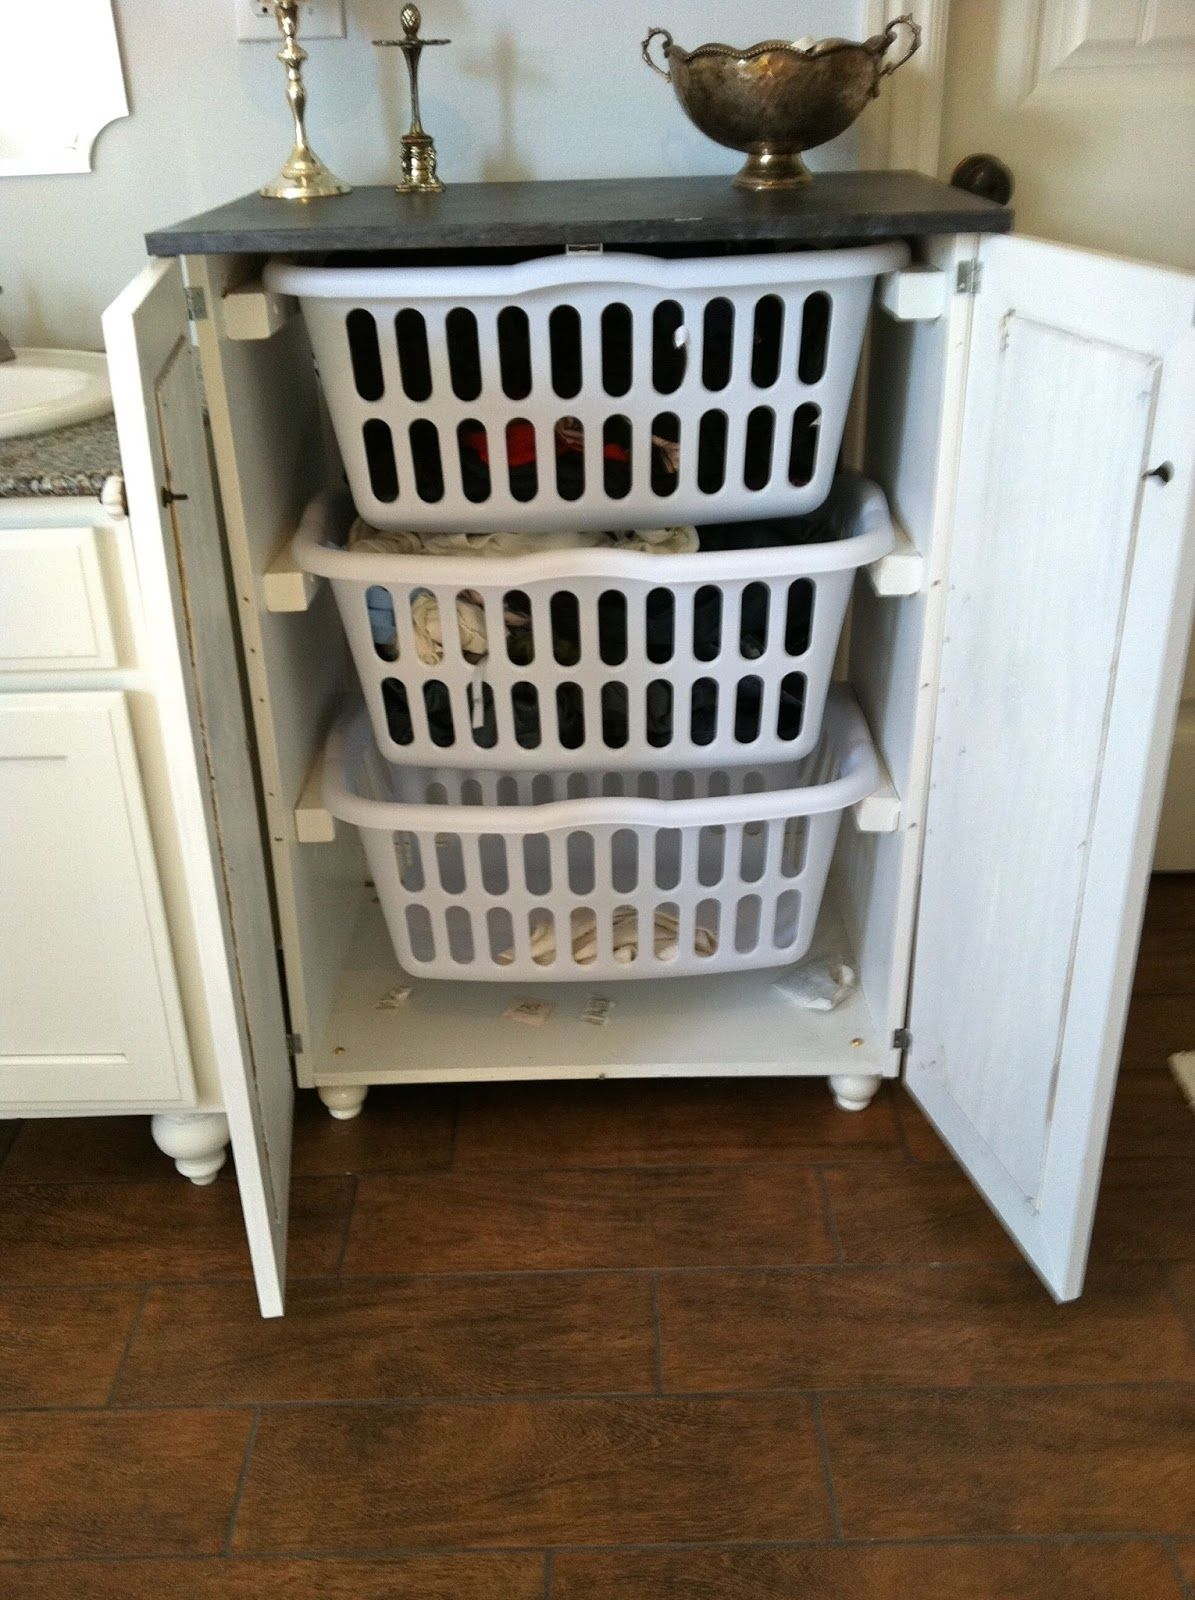 Dirty Laundry Baskets 7 Diy Projects For Renters Cool Laundry Basket Dresser